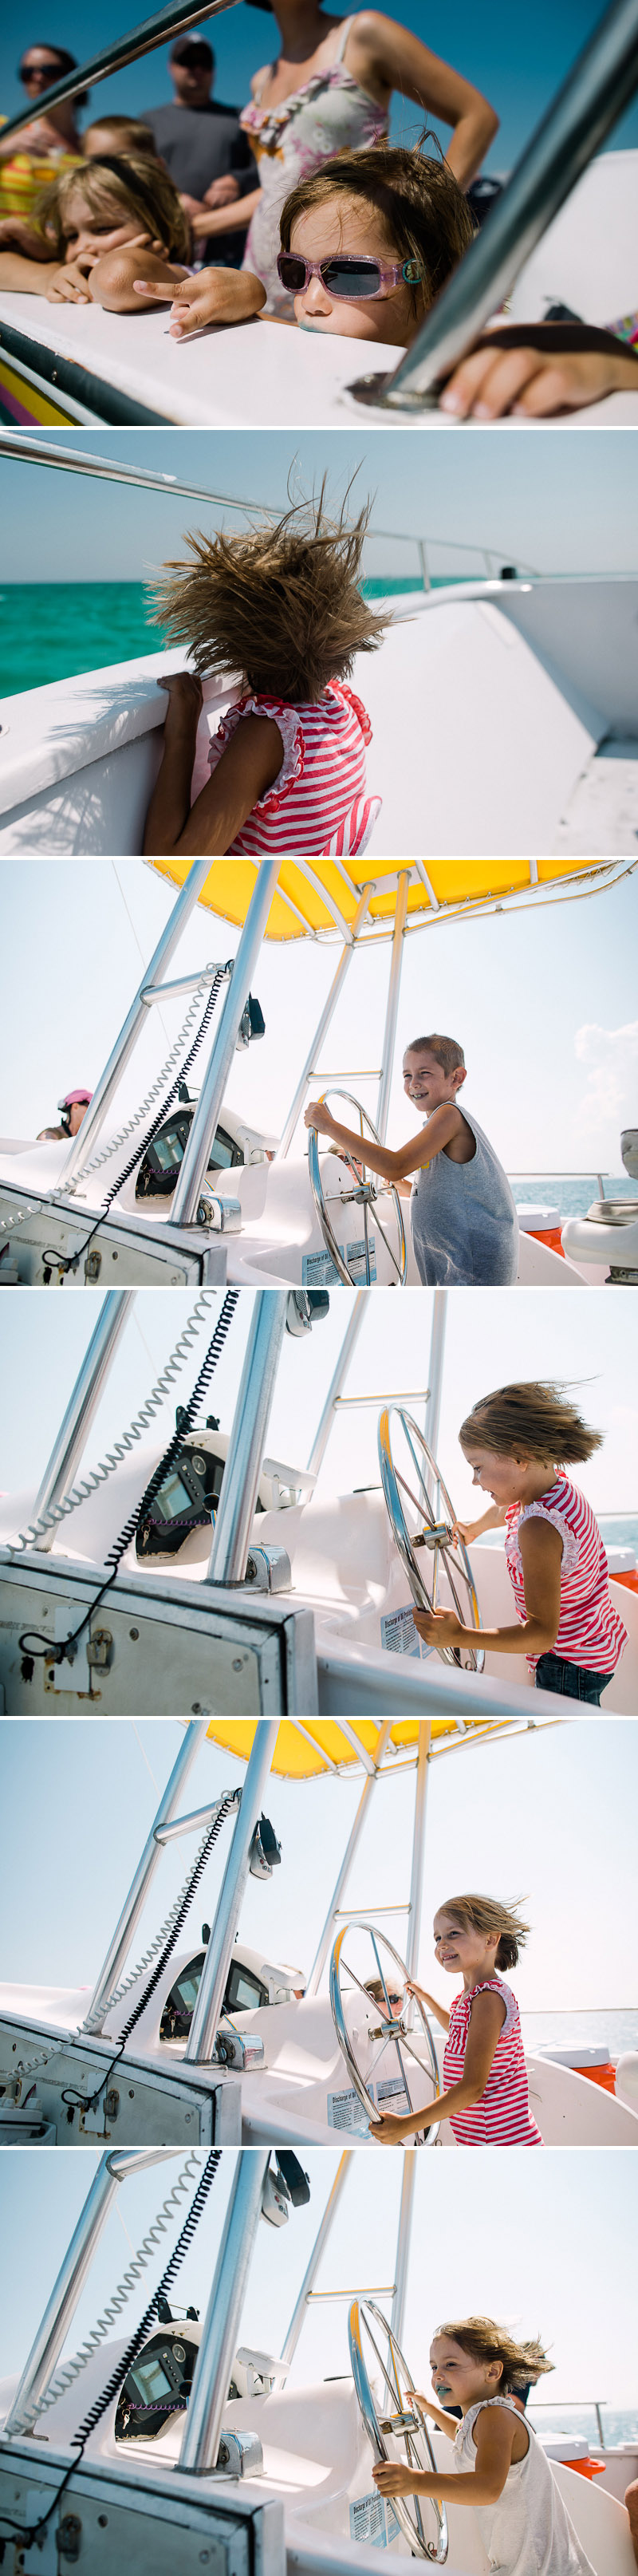 Kids driving a boat on a Dolphin cruise in Florida.